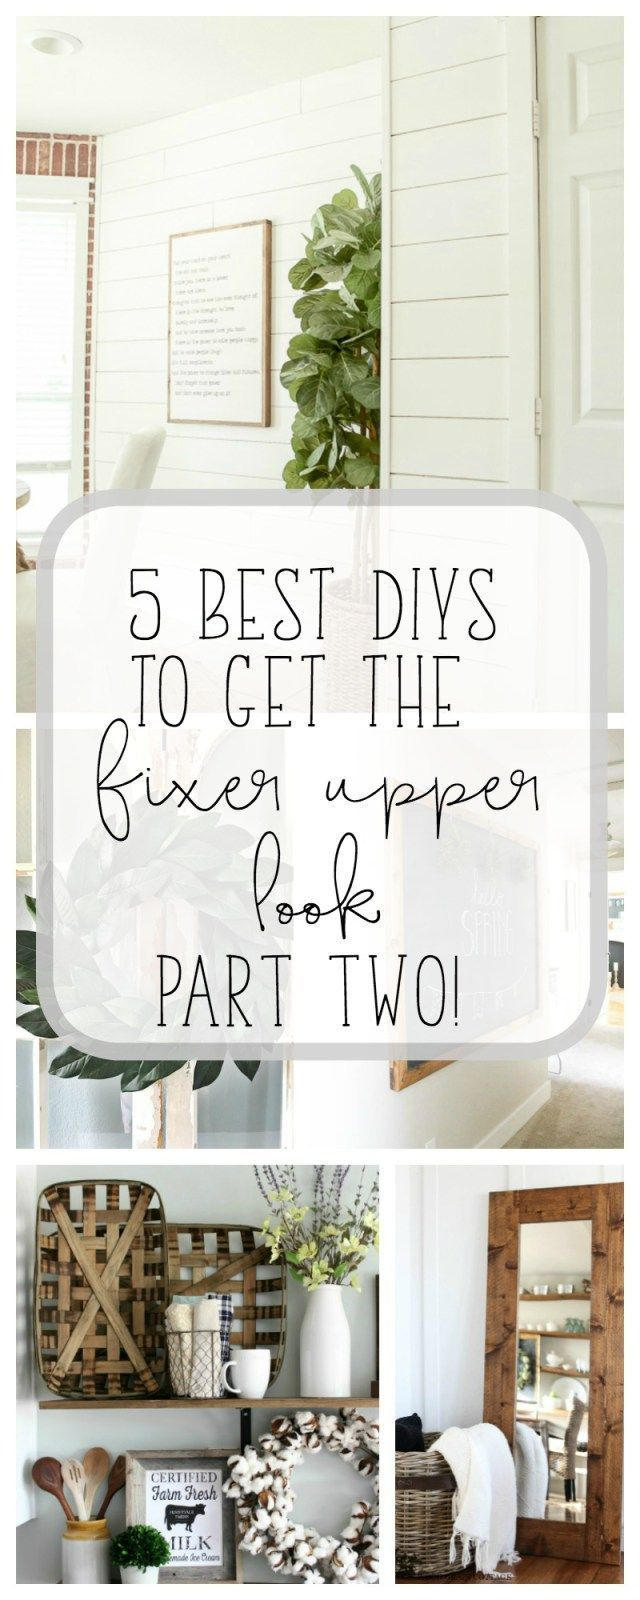 5 Best DIYs to get the Fixer Upper look, Part Two!! Get that farmhouse look on a budget by DIY you own. Tons of inspirations, projects and tutorials to get you started #BudgetHomeDecorating